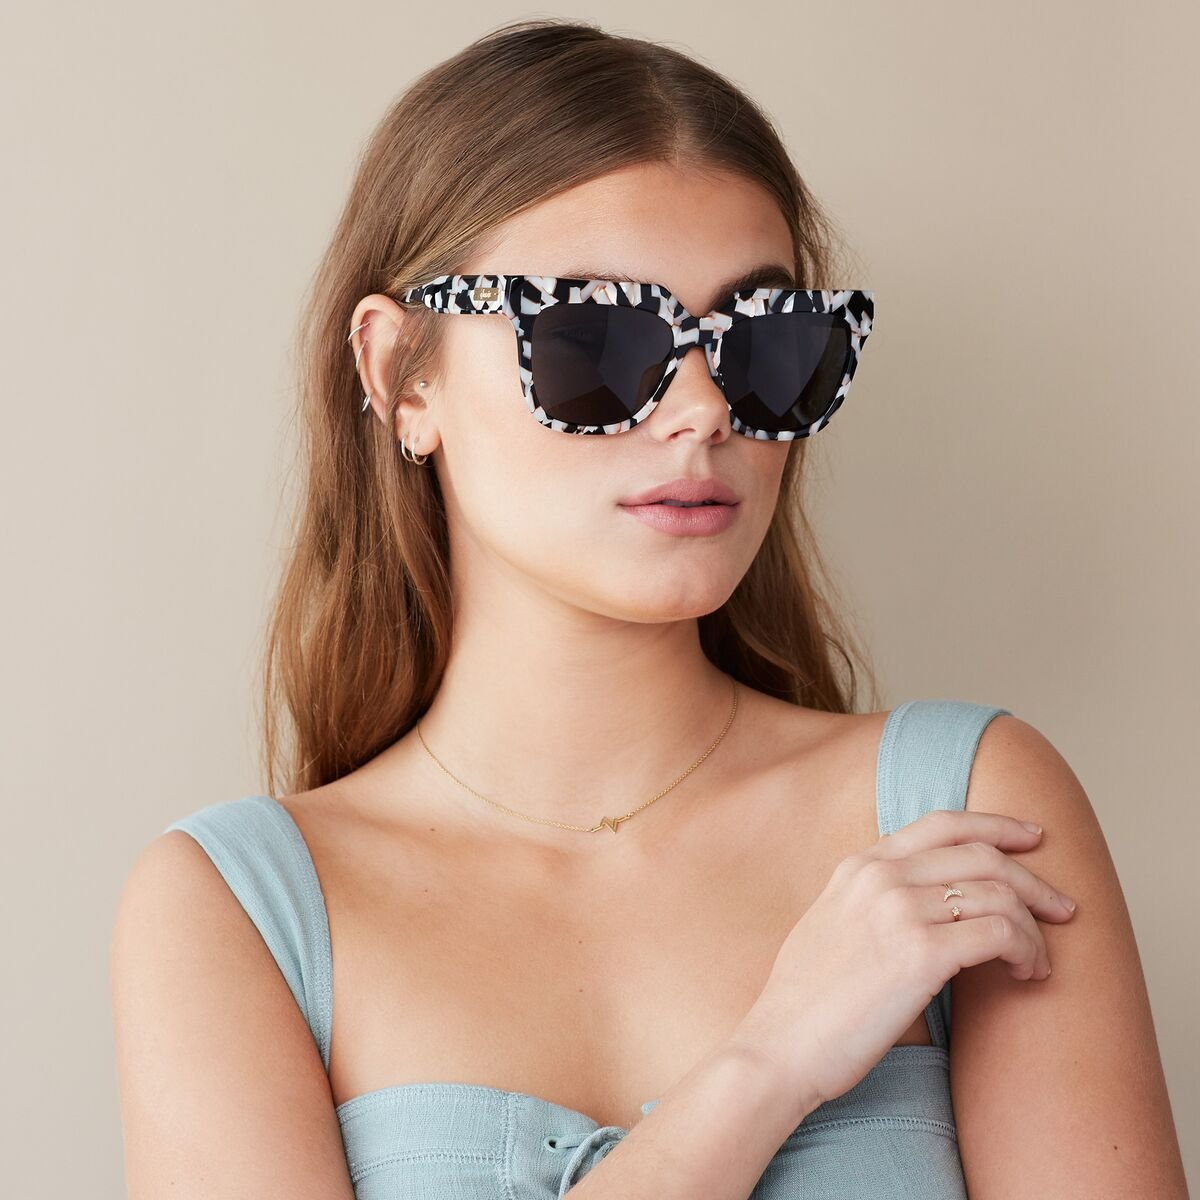 Sonix Women's Avalon Sunglasses, Luxe Marble/Black, One Size by Sonix (Image #4)